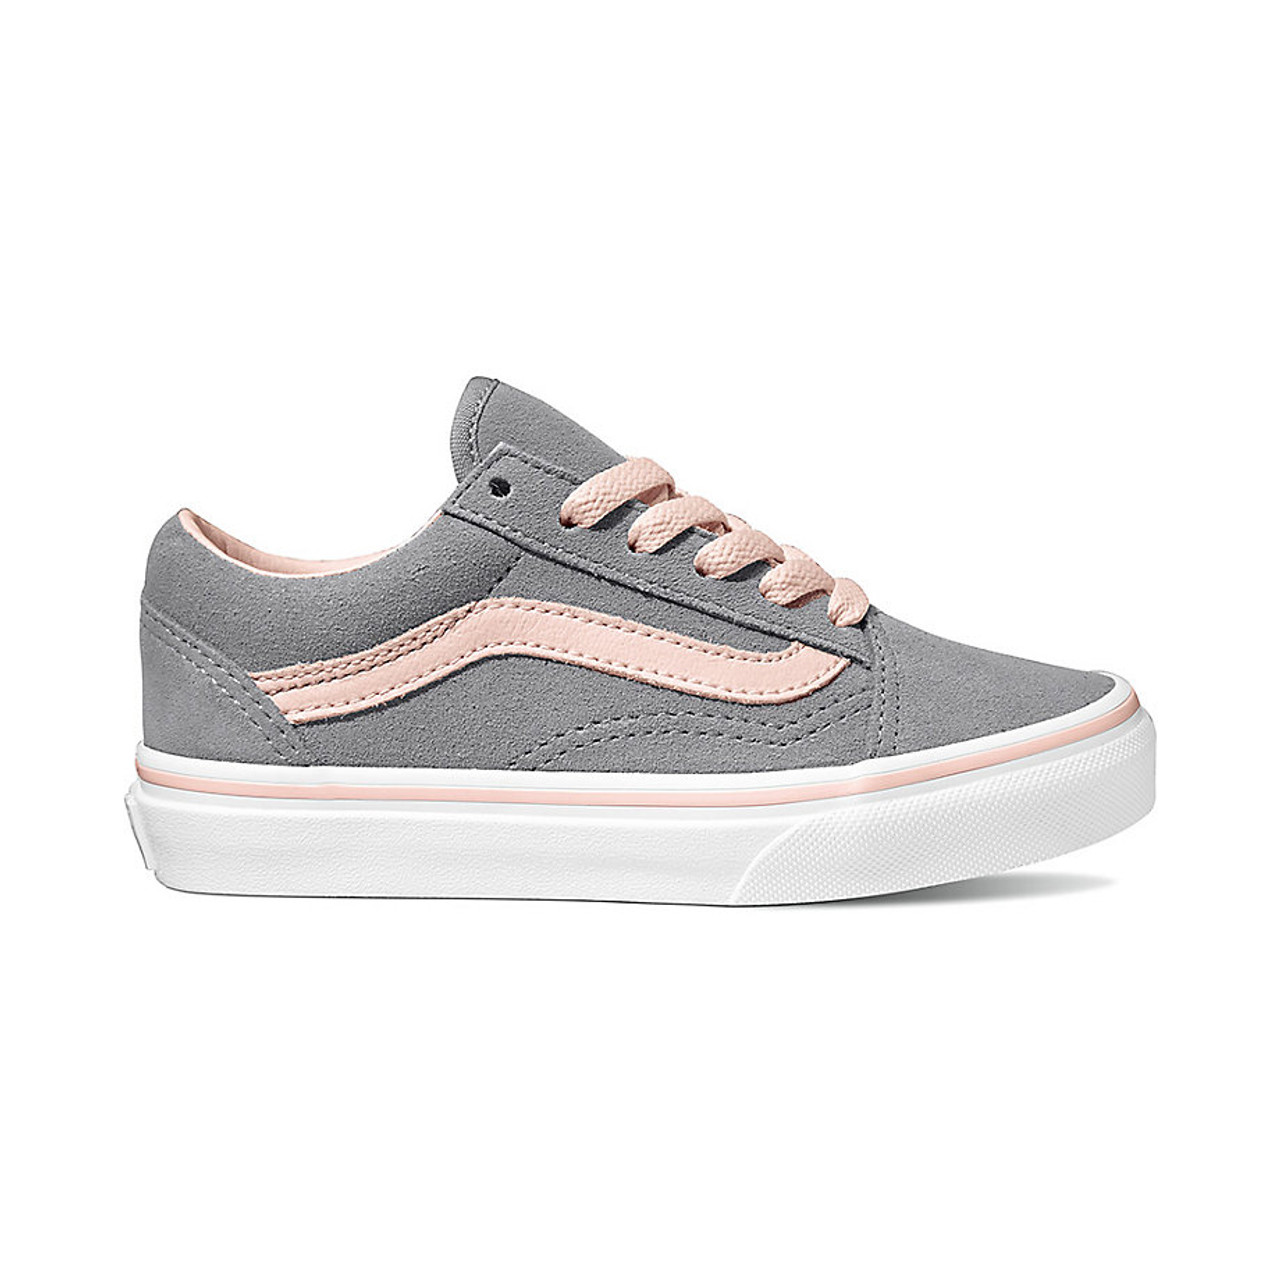 Vans Youth Shoes , Old Skool , Suede/Alloy/Heavenly Pink/White